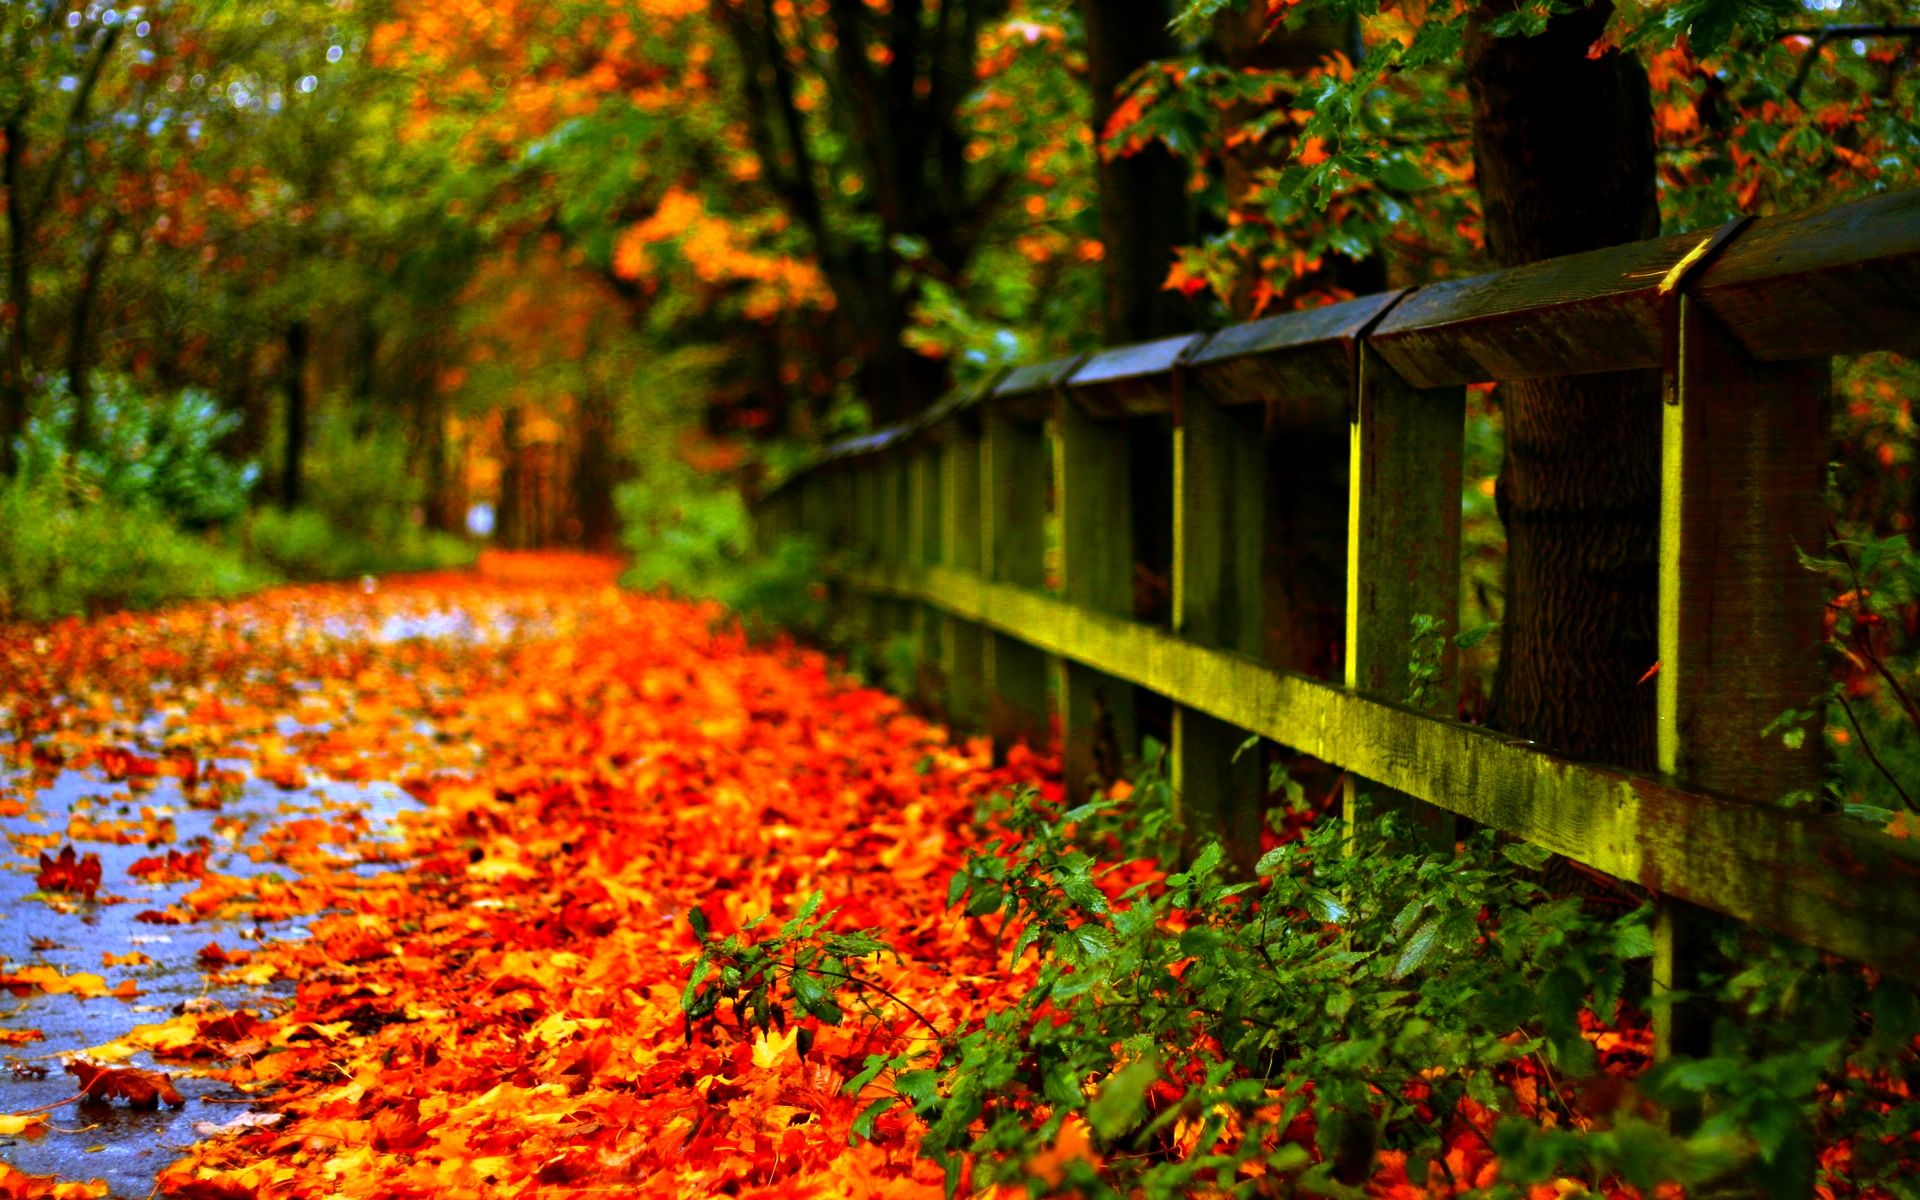 Autumn Leaves Nature Hd Desktop Wallpapers 4k Hd